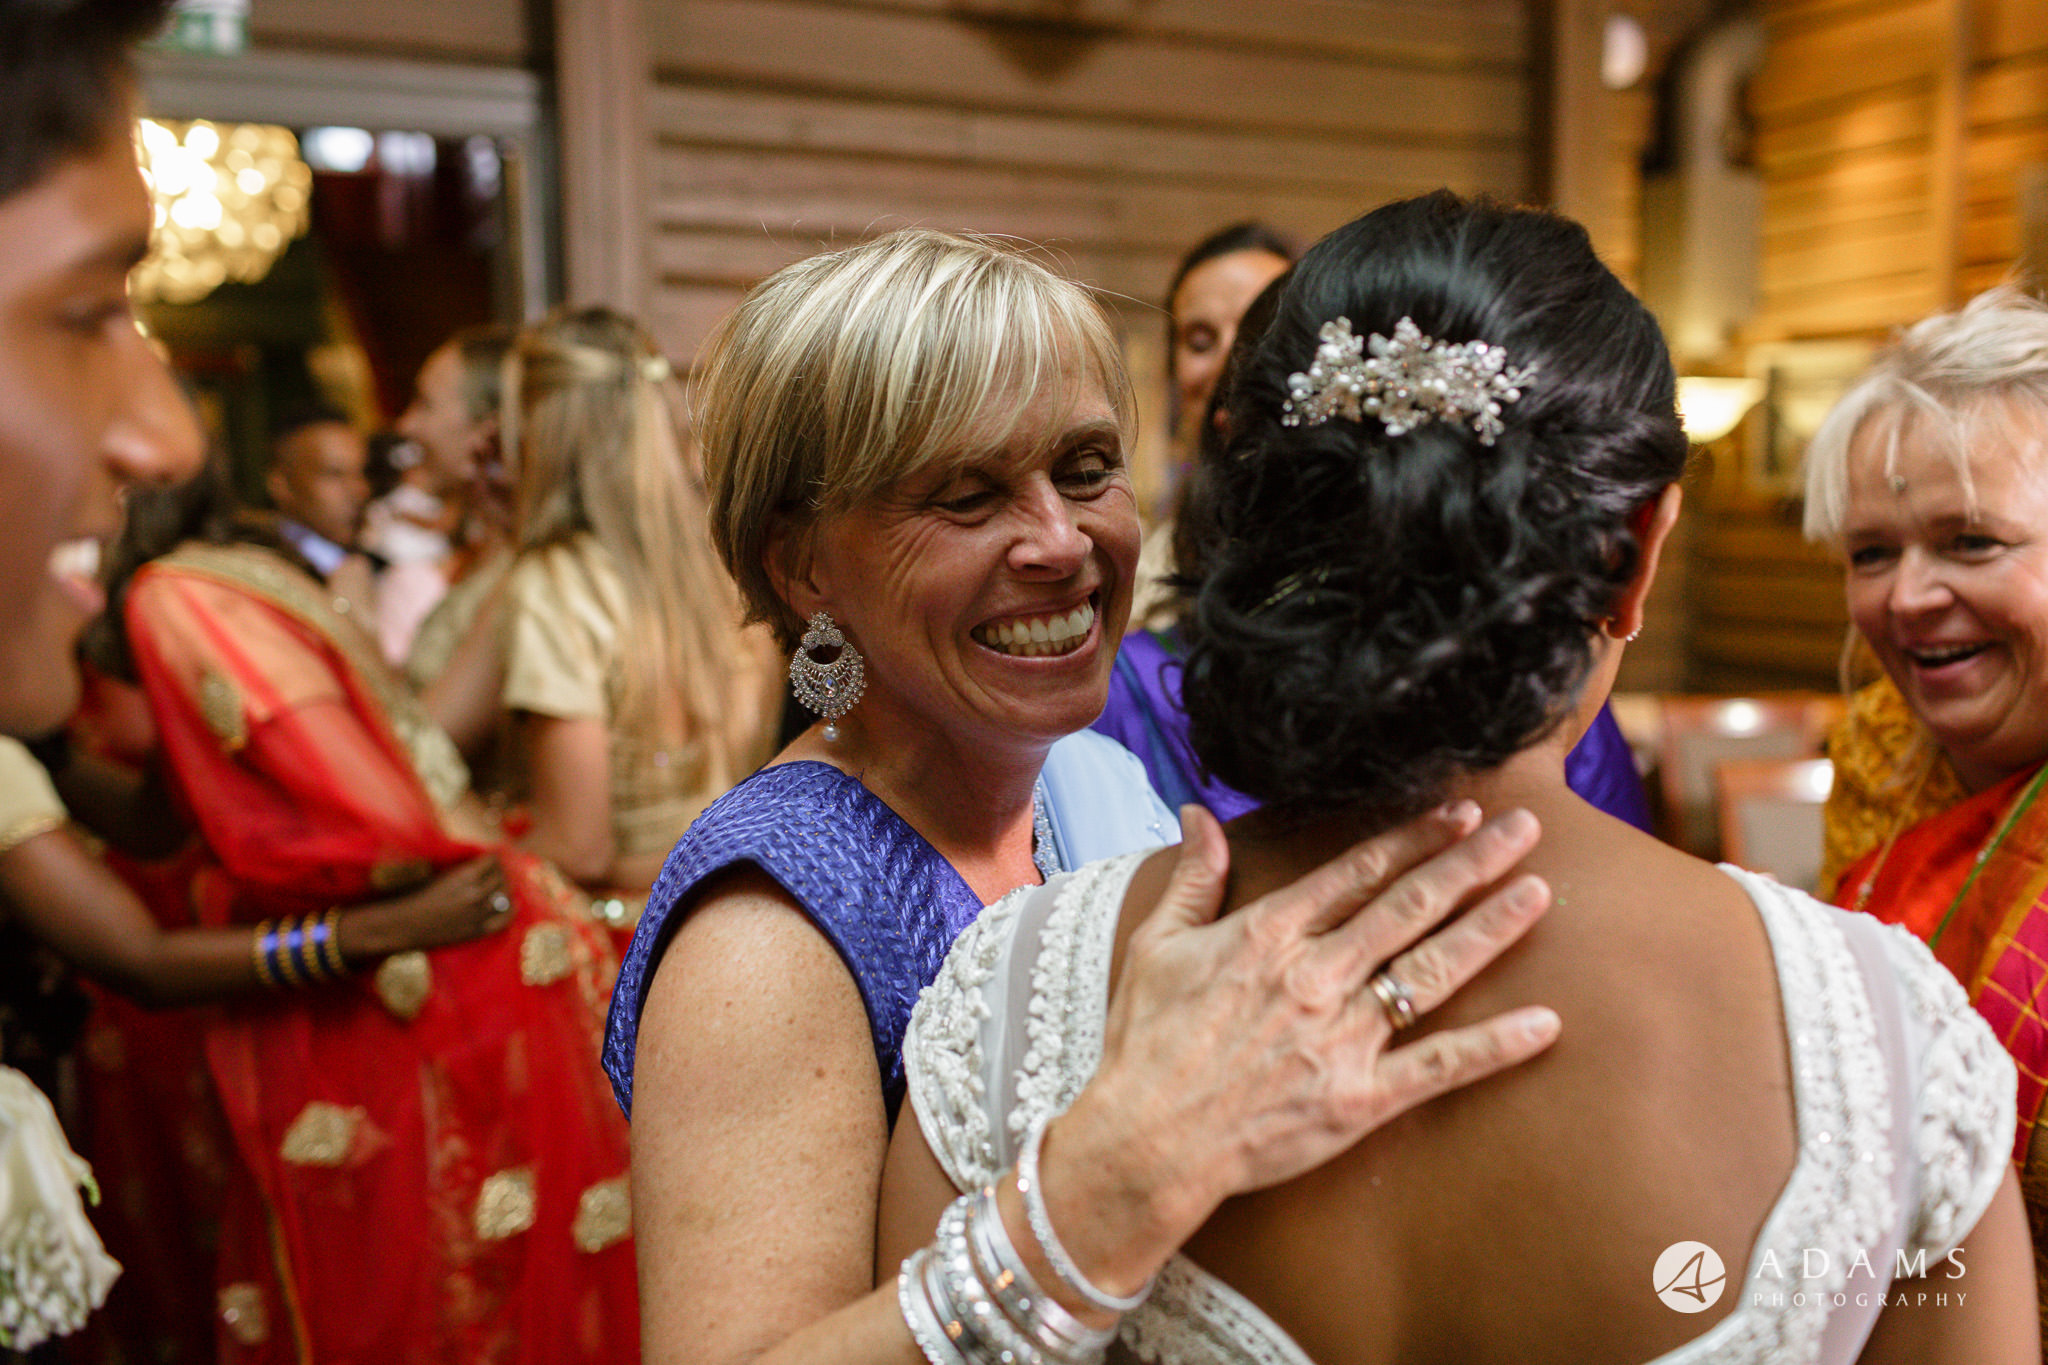 Oslo Wedding Photography guest smiling at the bride